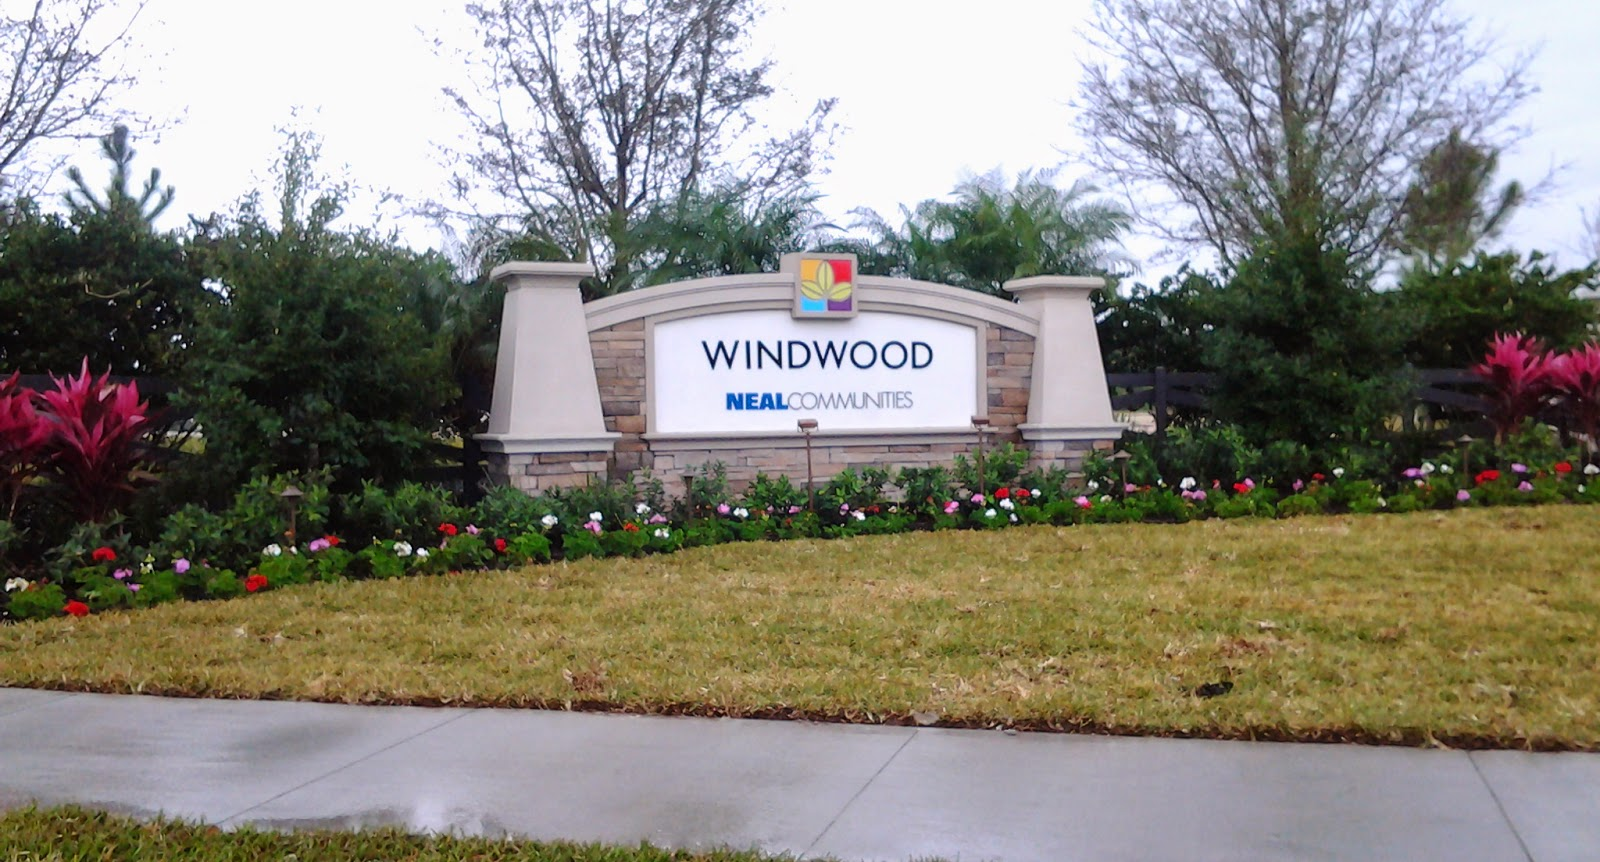 New homes at Windwood in Venice FL by Neal Communities